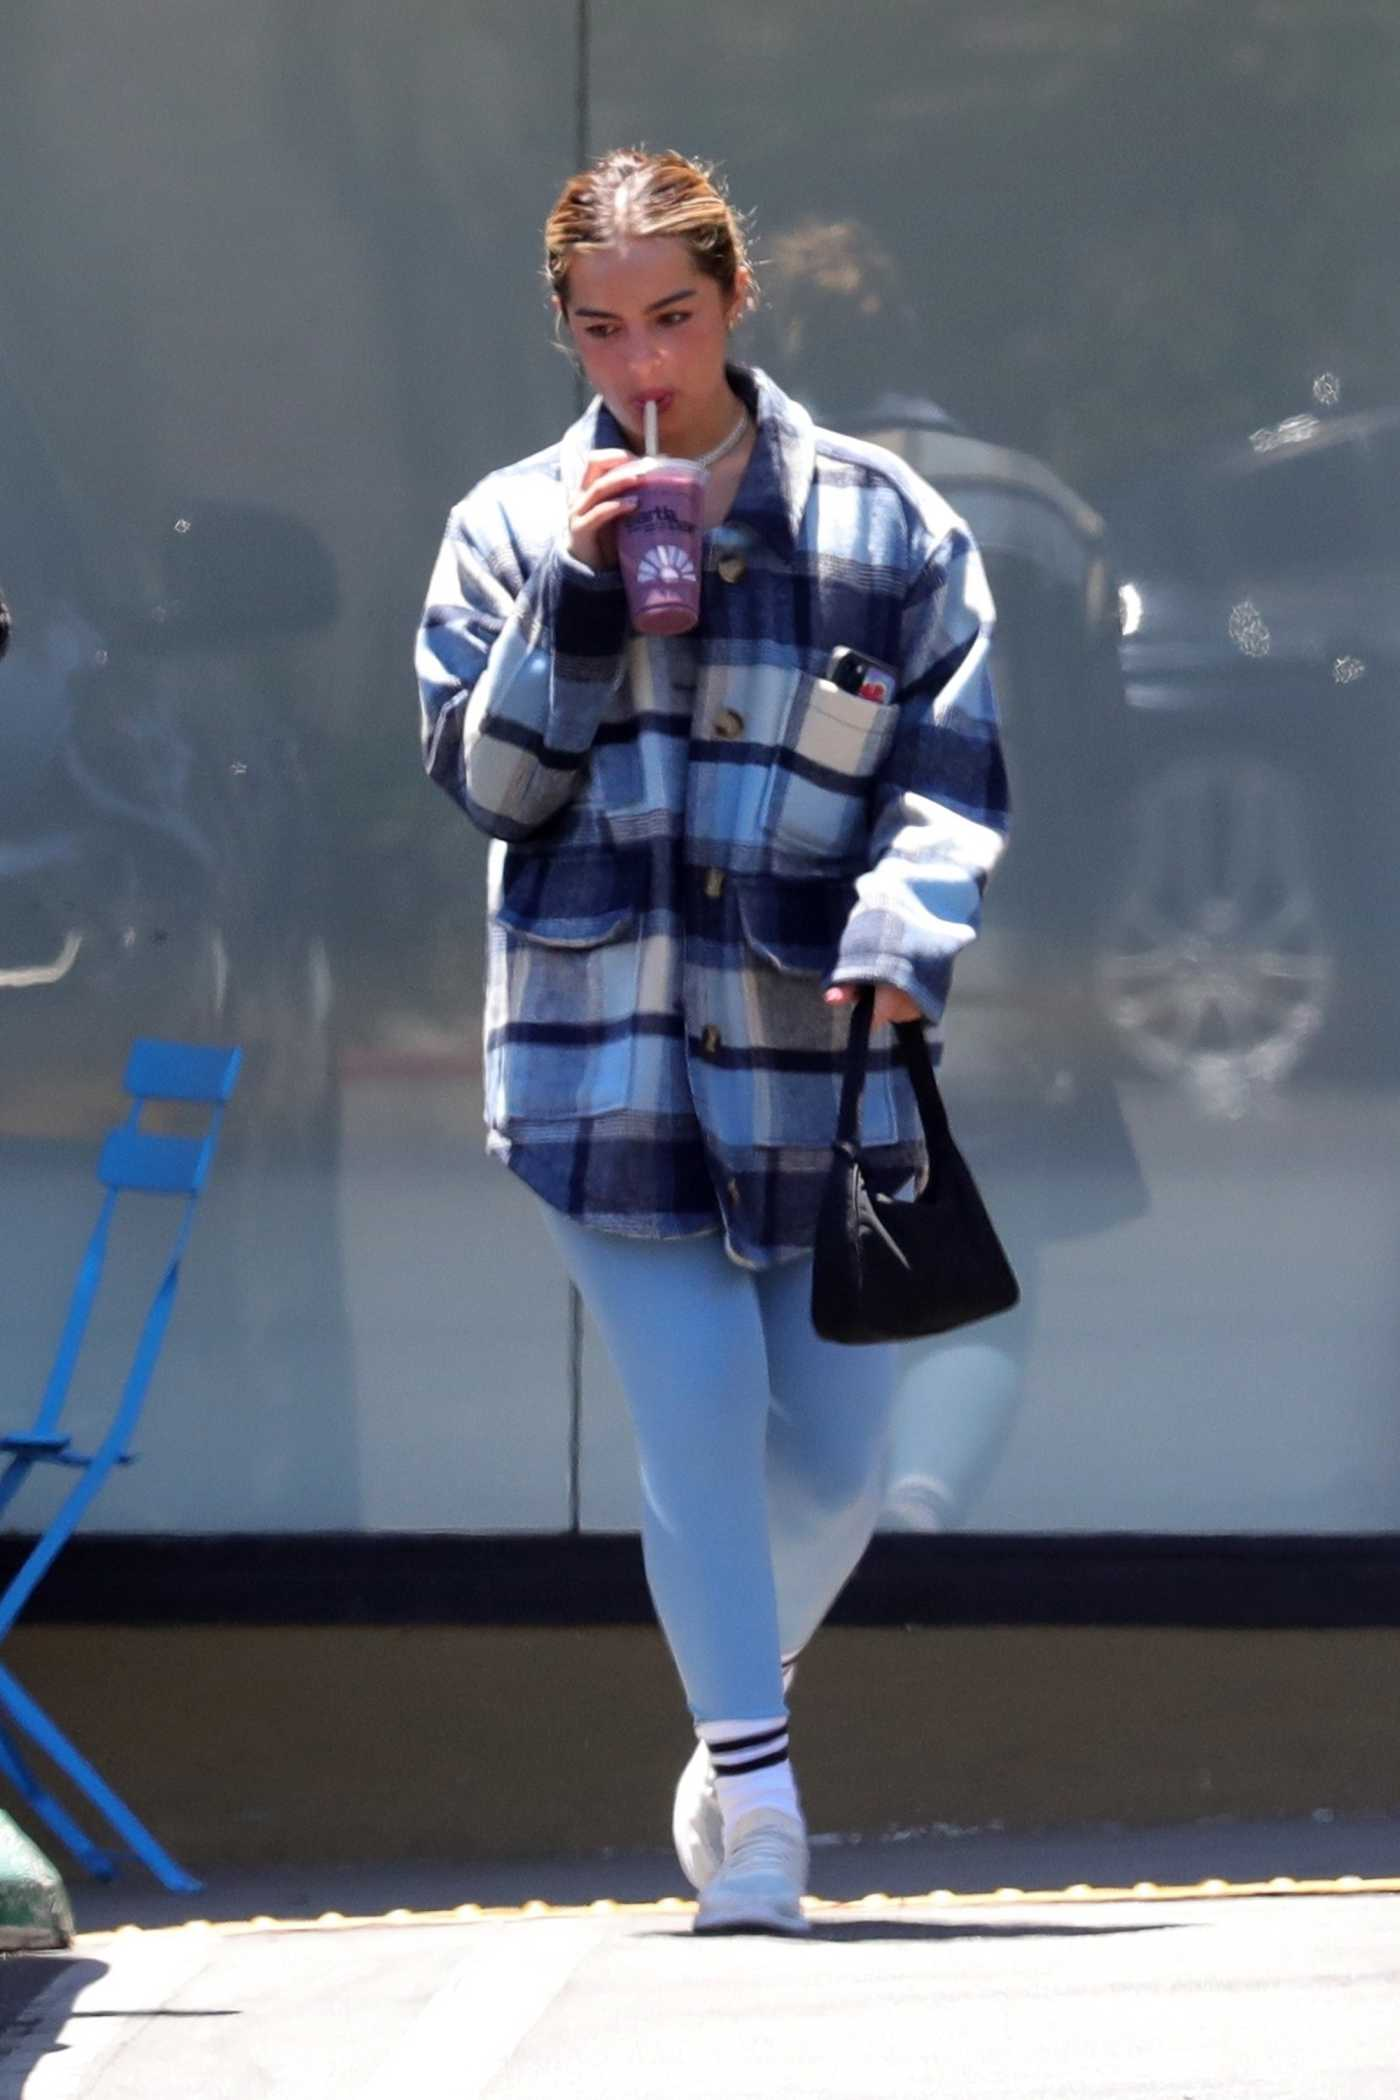 Addison Rae in a Plaid Jacket Leaves Her Pilates Workout in West Hollywood 06/25/2021